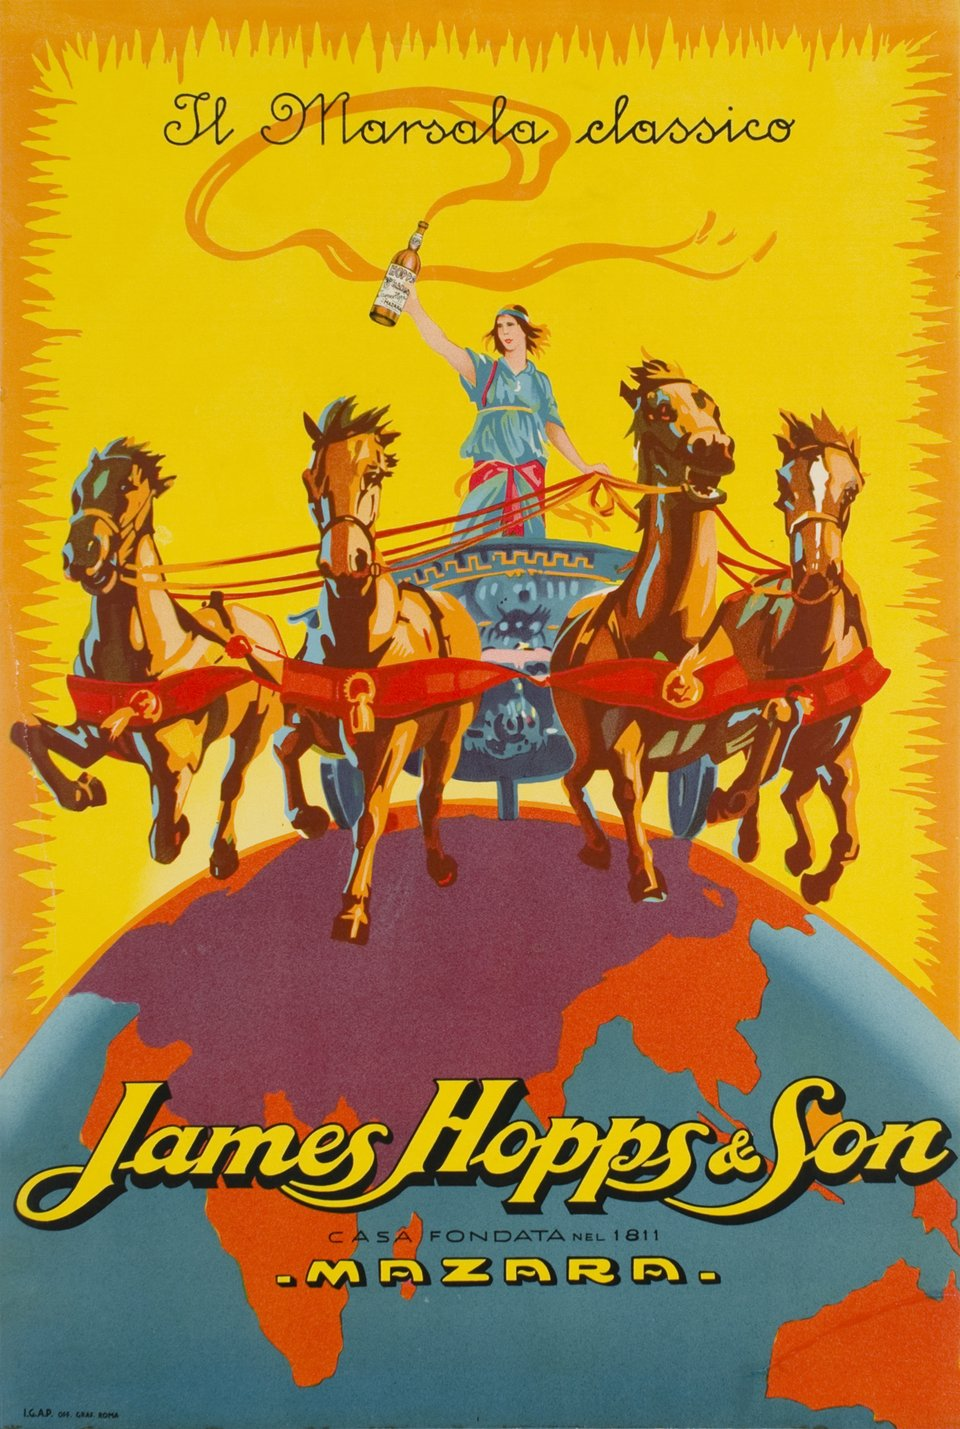 Il Marsala classico, James Hopps & son – Vintage poster – ANONYMOUS – 1920